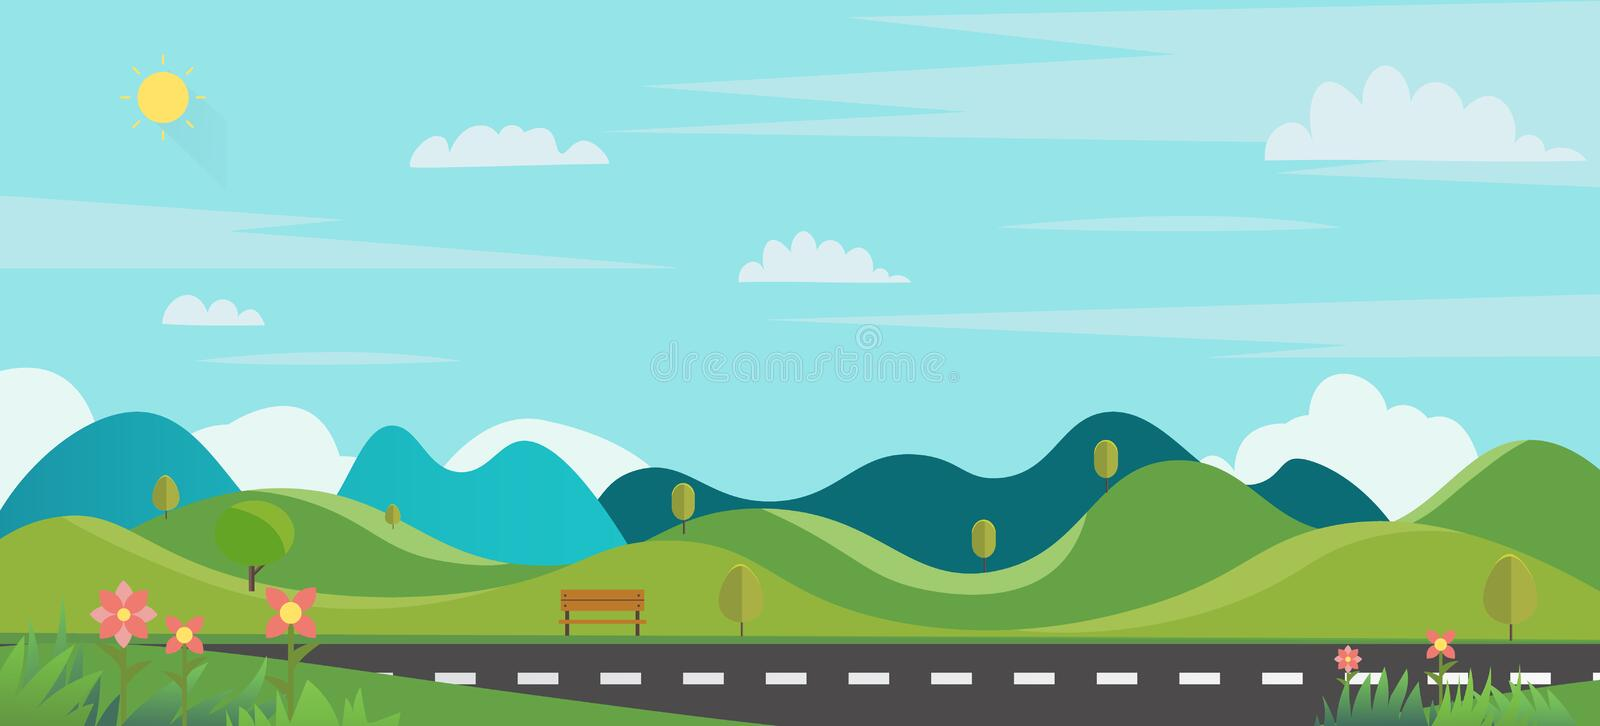 Meadow landscape with city on background vector illustration. public park  and town with sky background. beautiful nature